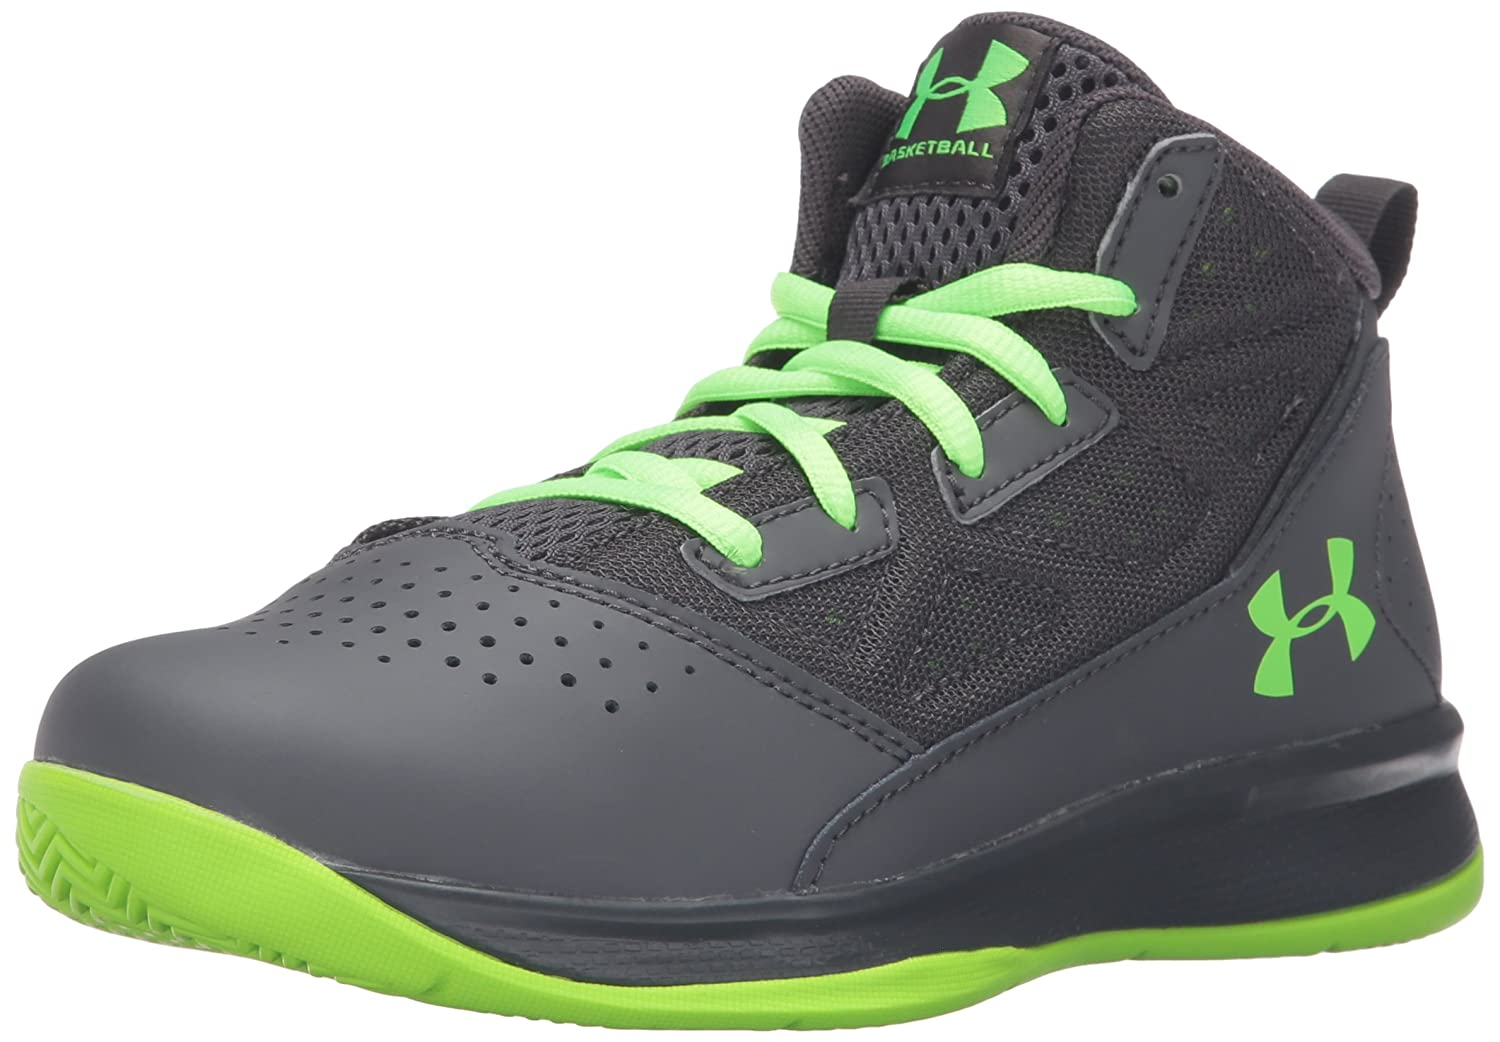 5d7a6ef0ef4c Under Armour Unisex-Child Boys  Jet Mid Basketball Shoes - Grade School Boys   Pre School Jet Mid  Amazon.co.uk  Shoes   Bags